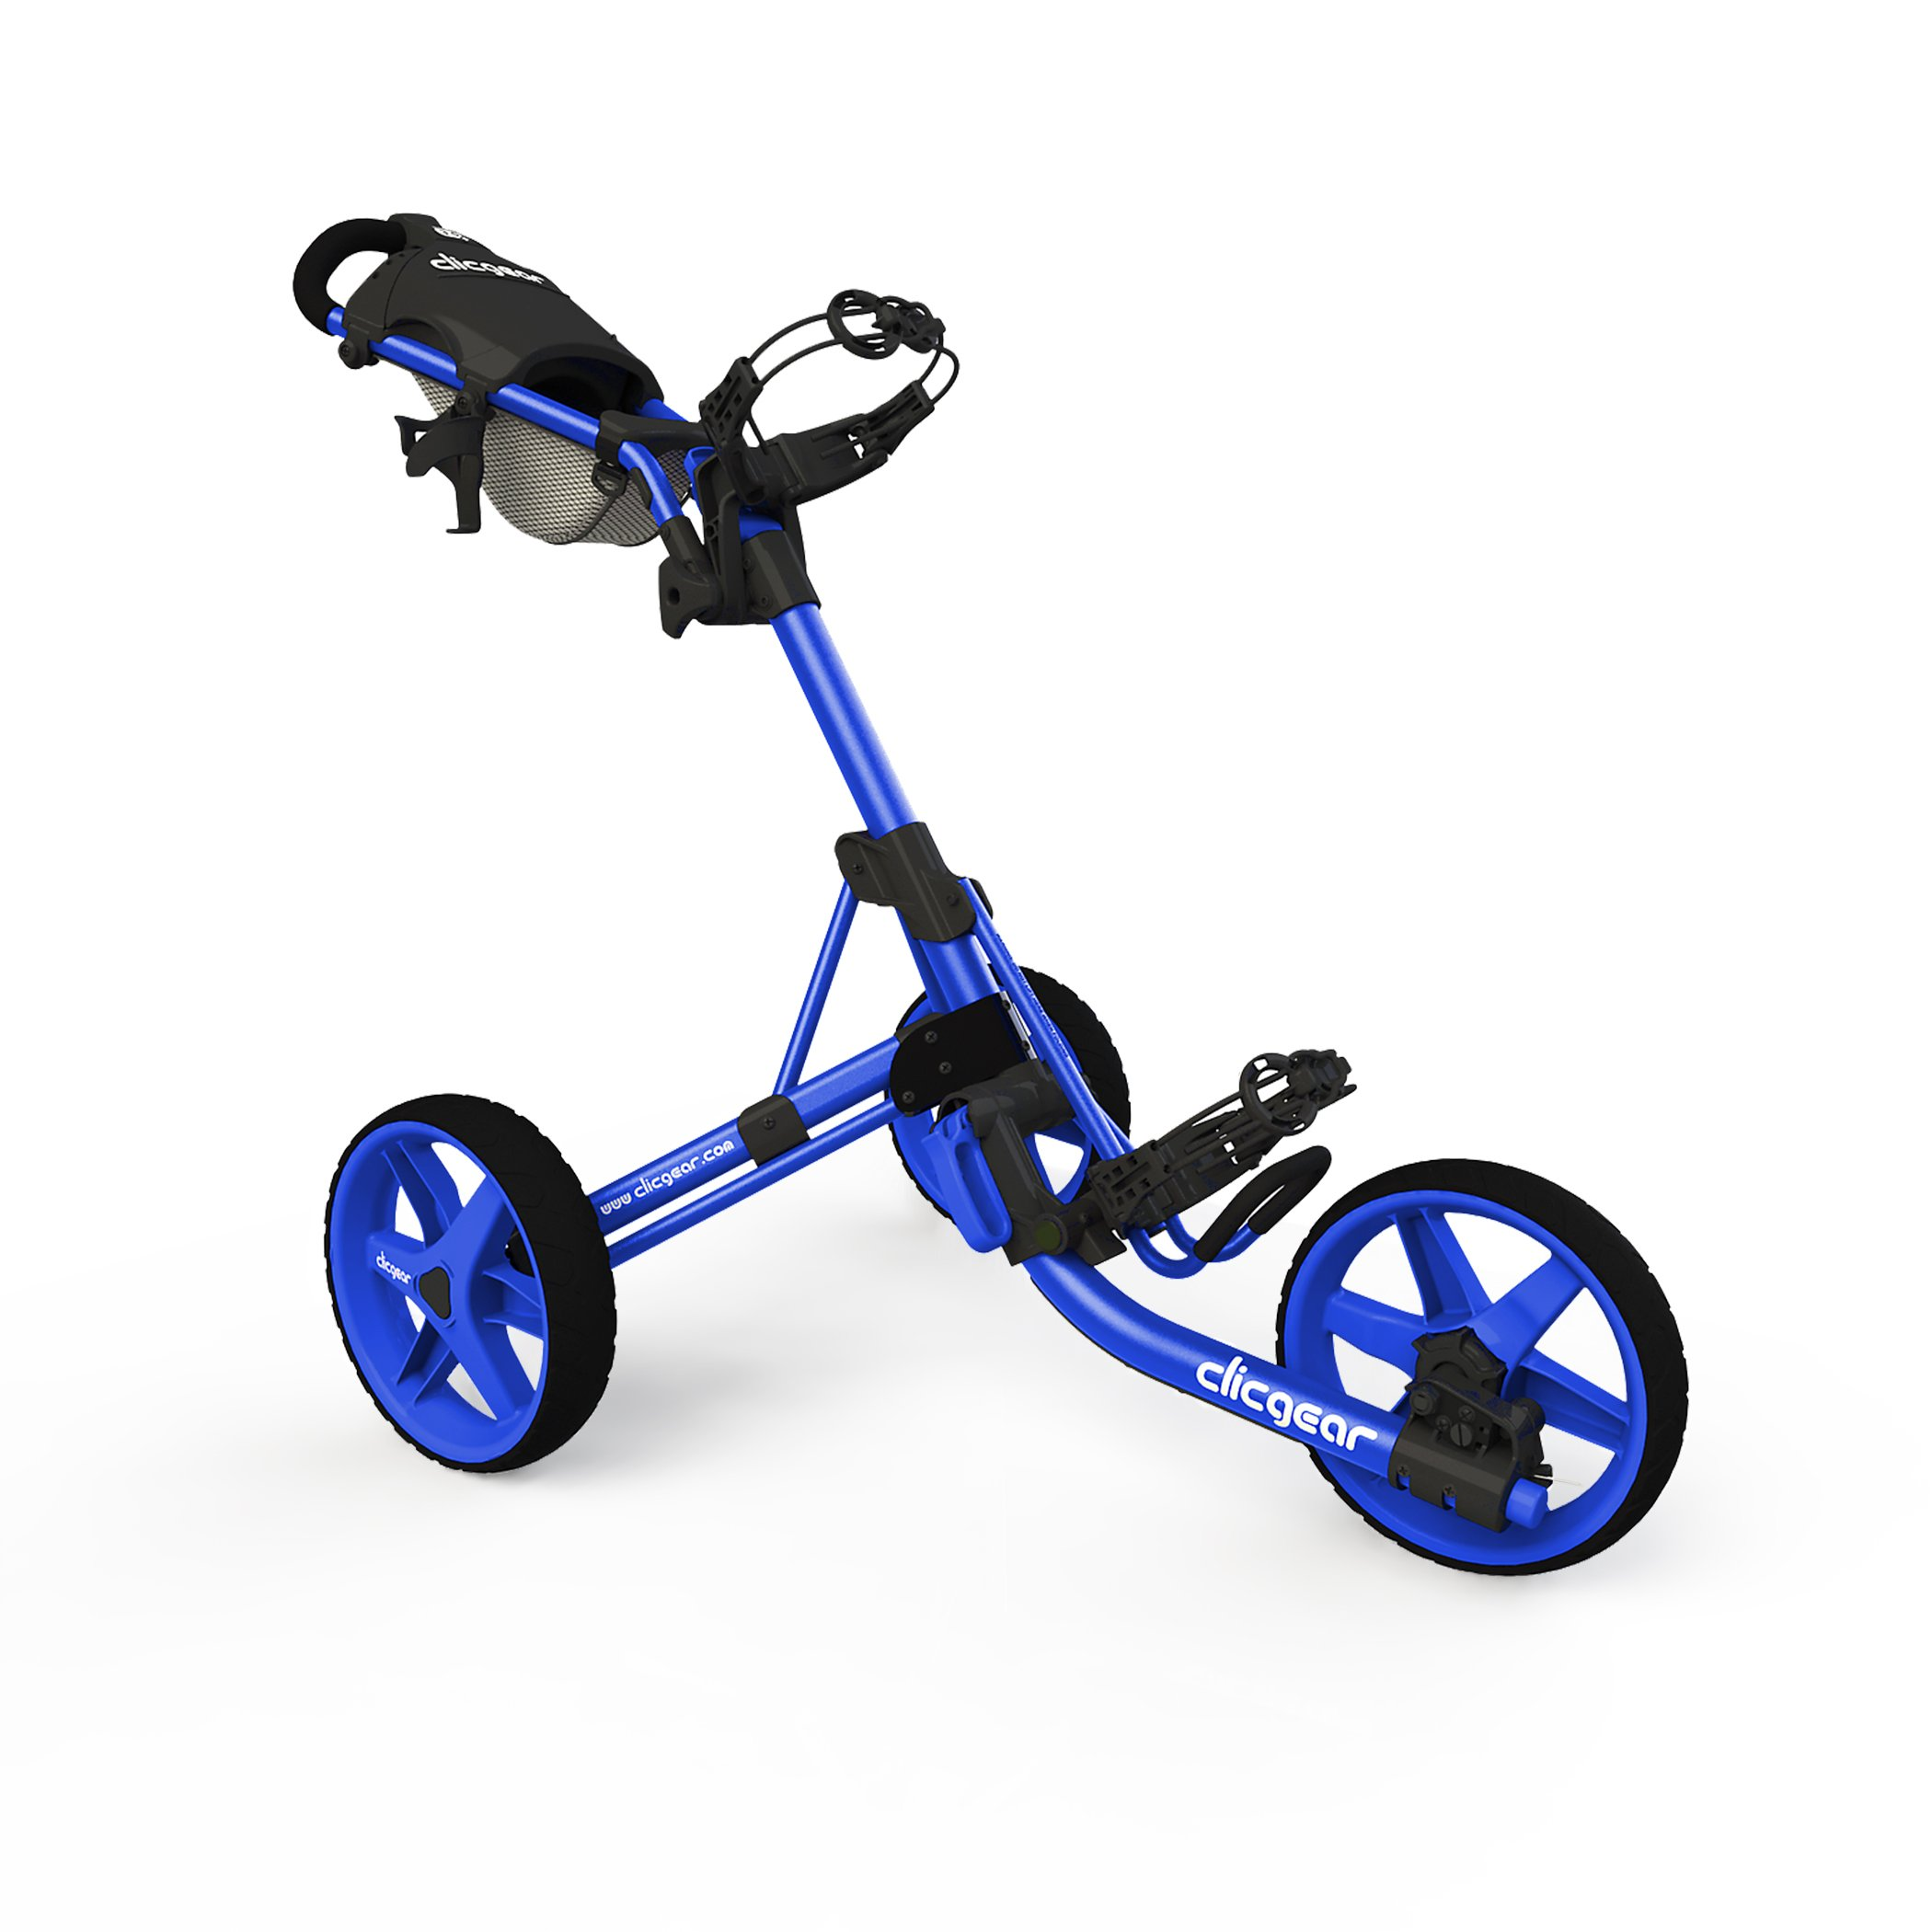 Clicgear Model 3.5+ | 3-Wheel Golf Push Cart (Blue) by Clicgear